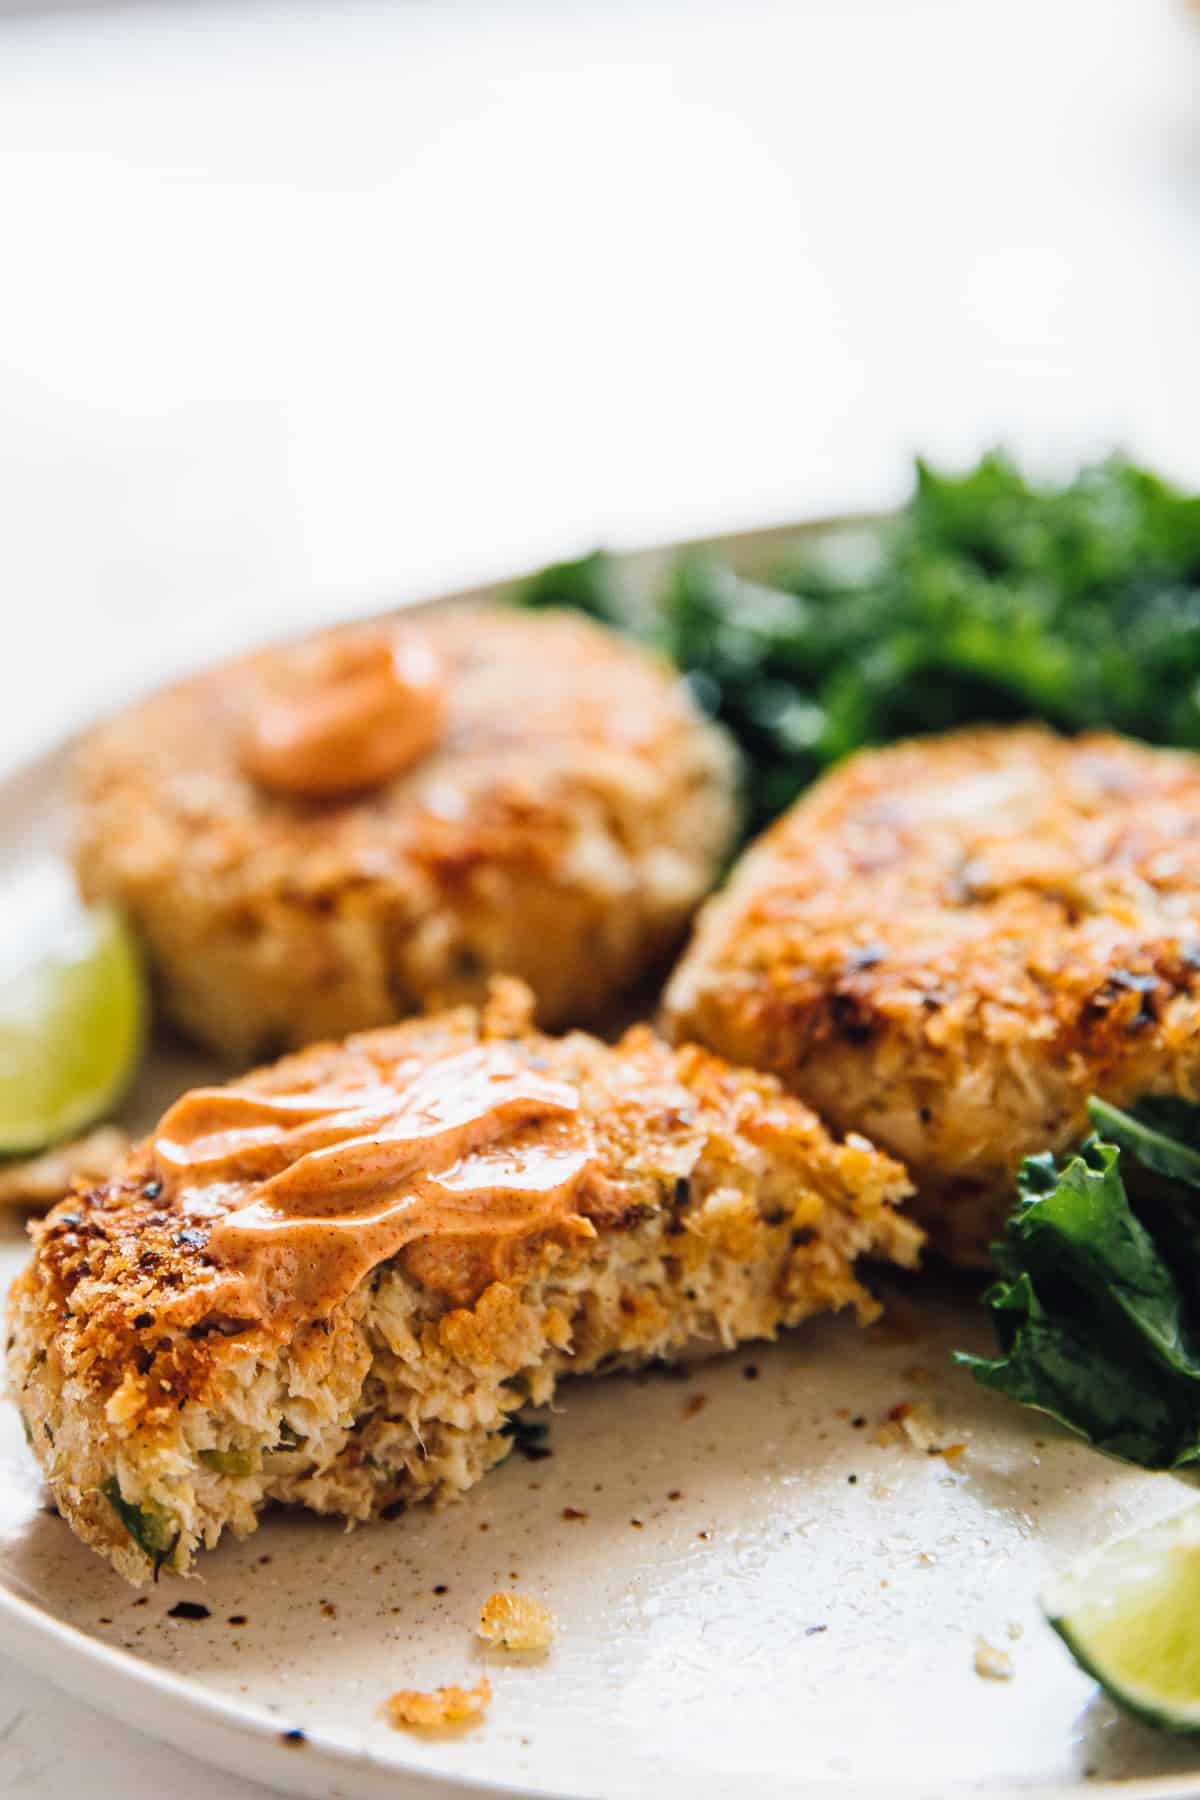 Vegan crab cakes, topped with sauce on a plate with salad on the side.